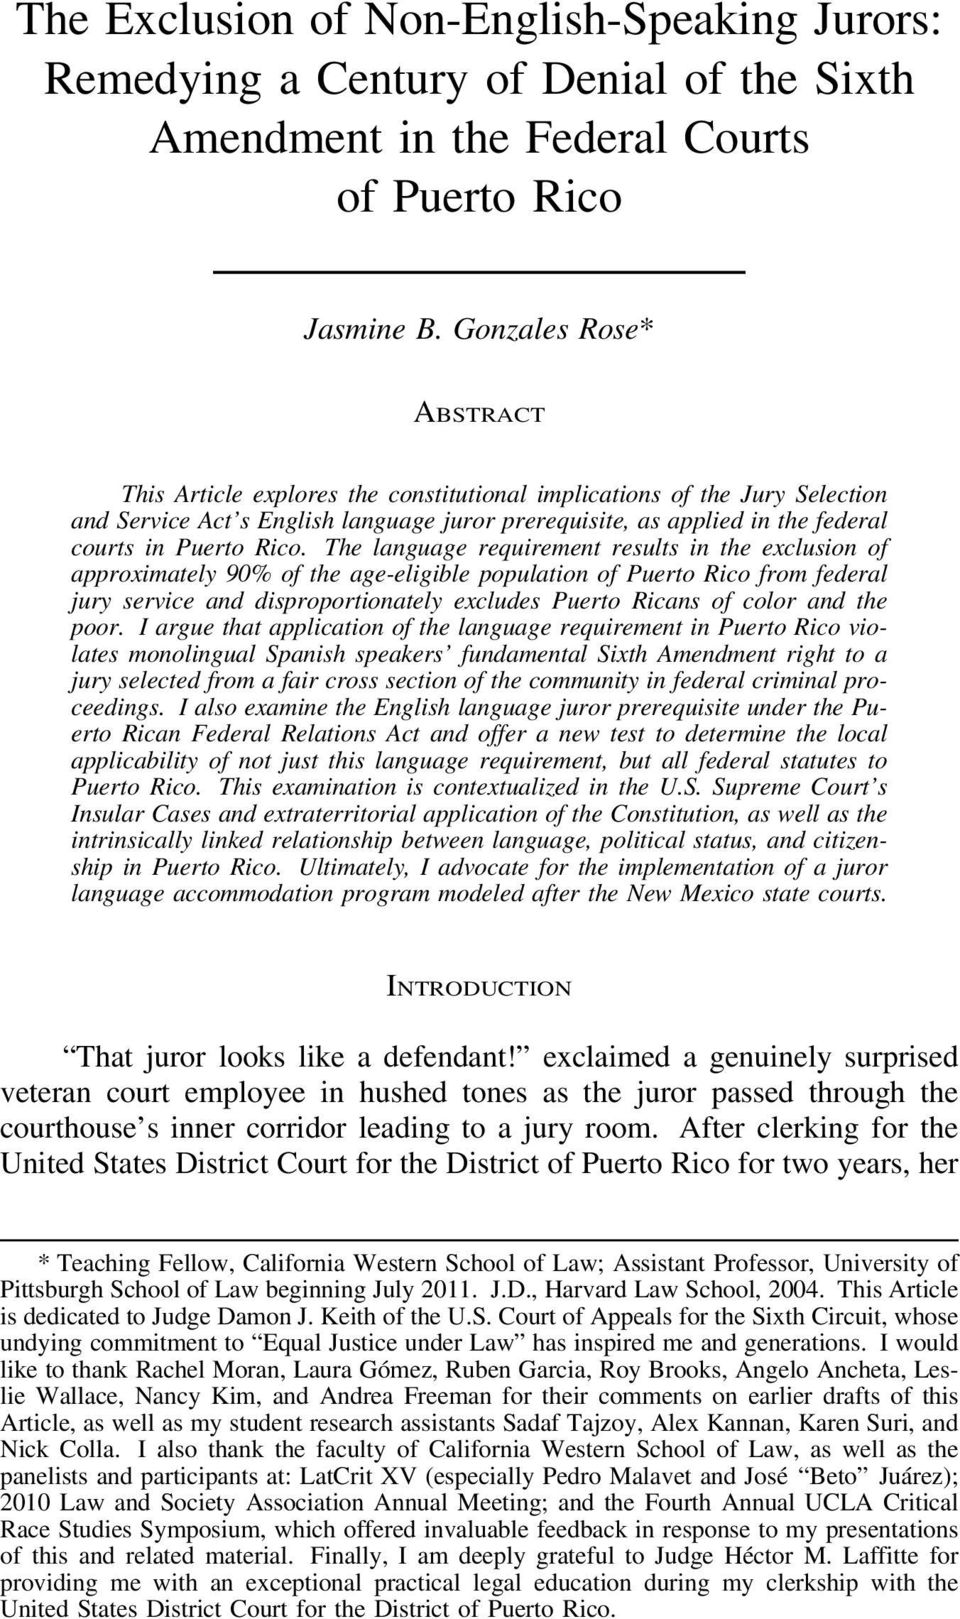 Rico. The language requirement results in the exclusion of approximately 90% of the age-eligible population of Puerto Rico from federal jury service and disproportionately excludes Puerto Ricans of